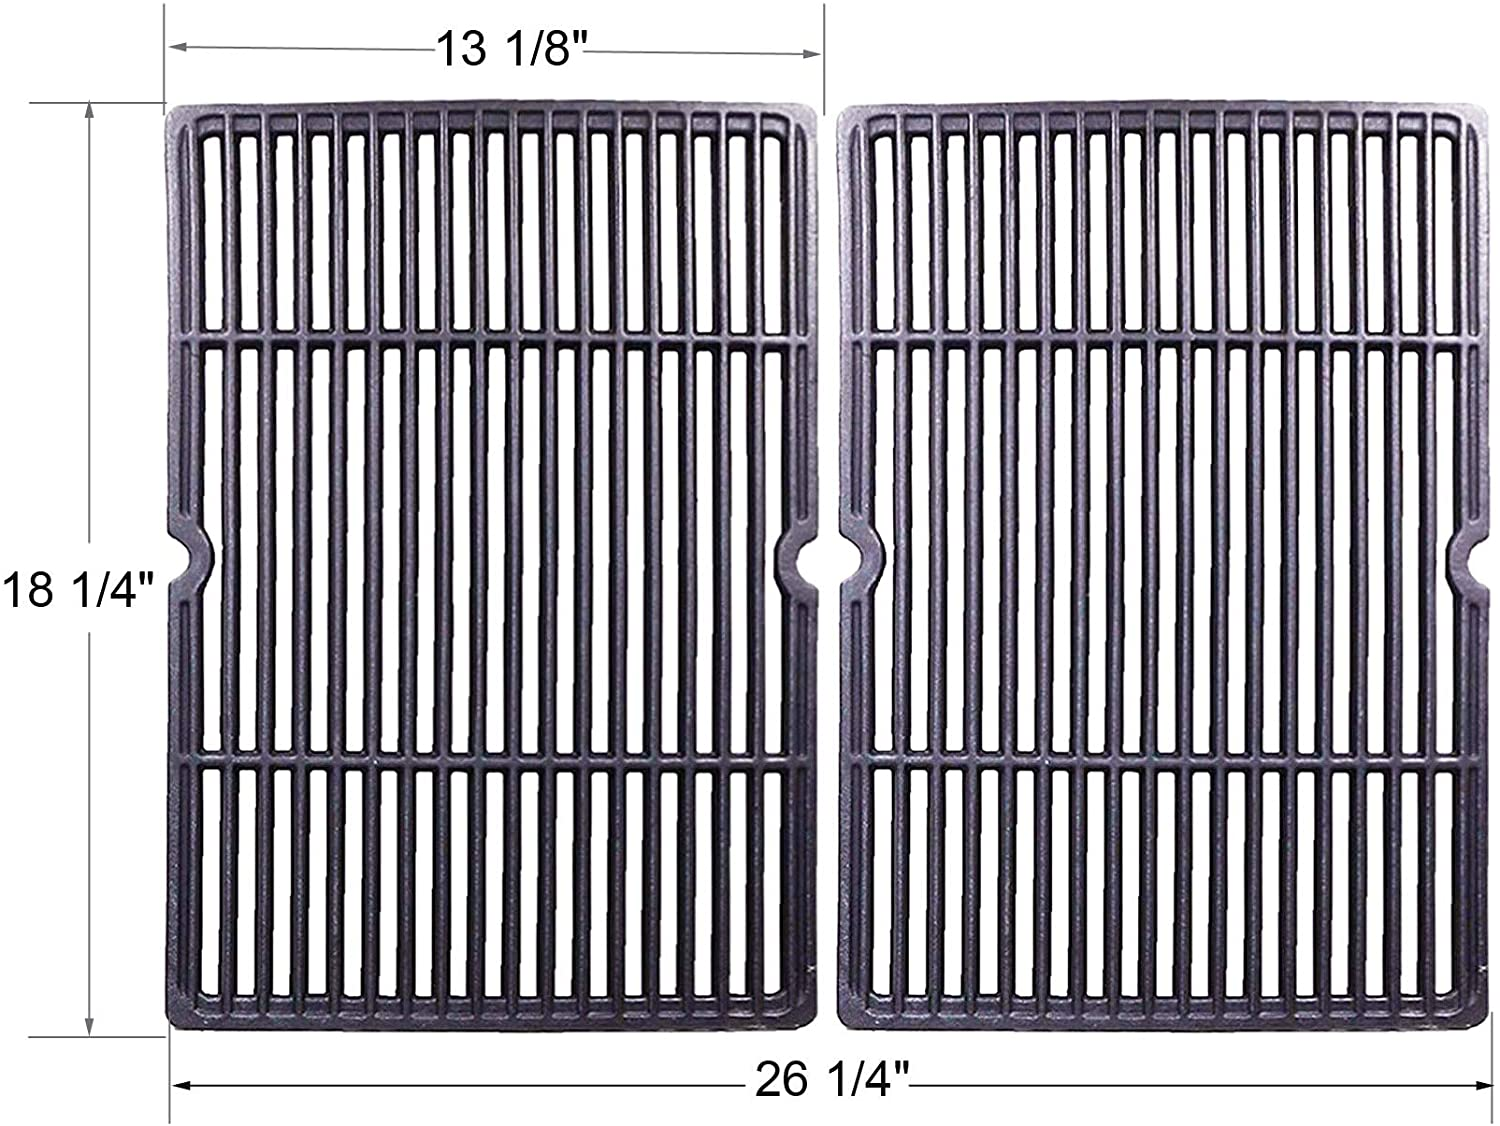 BBQ funland GI6652 Porcelain Coated Cast Iron Cooking Grid Replacement for Gas Grill Models by Char-Broil, Coleman, Kenmore, Thermos, Uniflame, CG-65P-CI, 18 1/4 inch, Set of 2